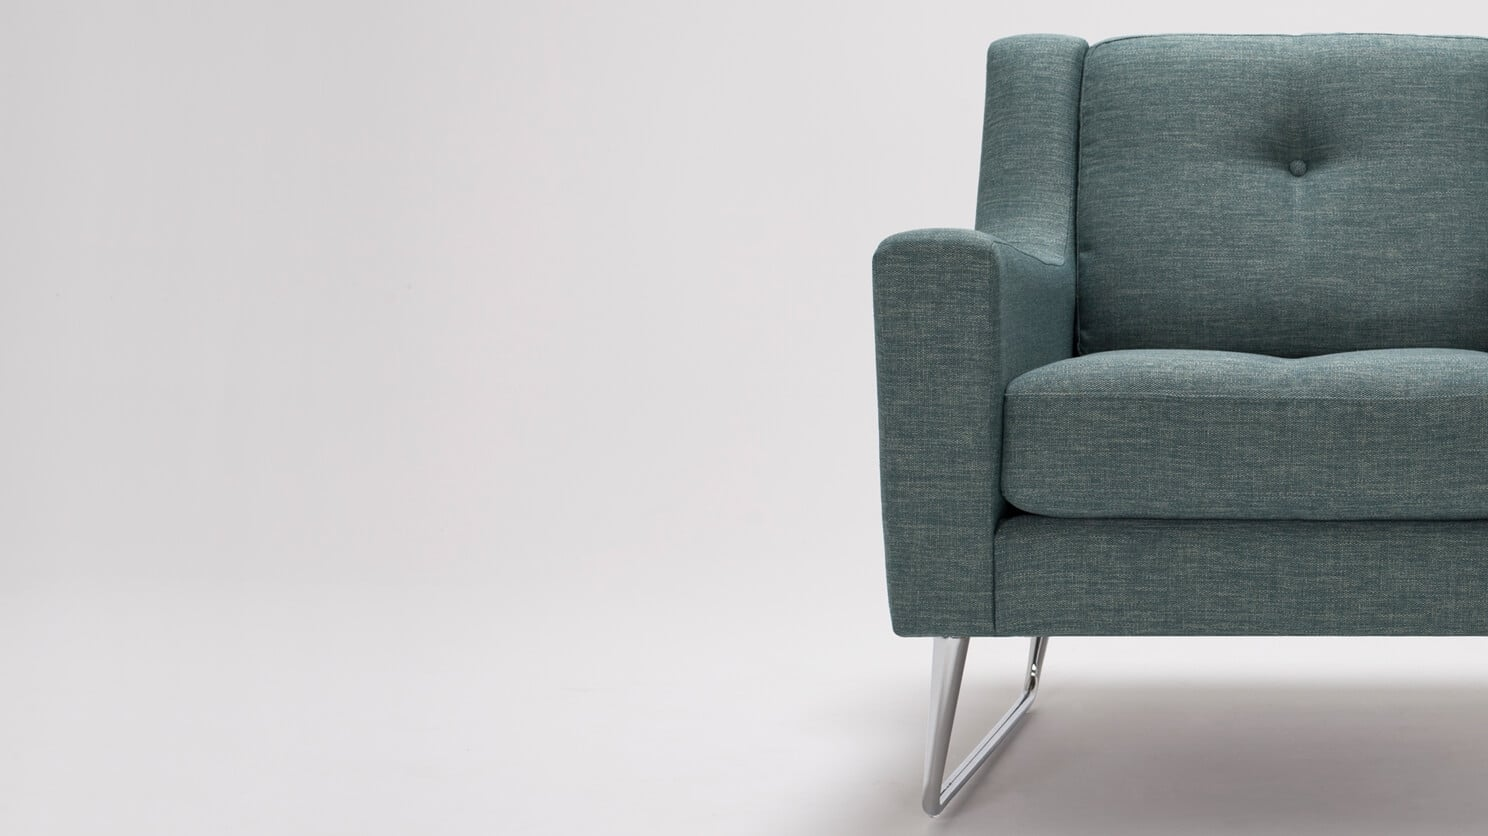 30104 02 6 chairs elise chair key largo teal detail